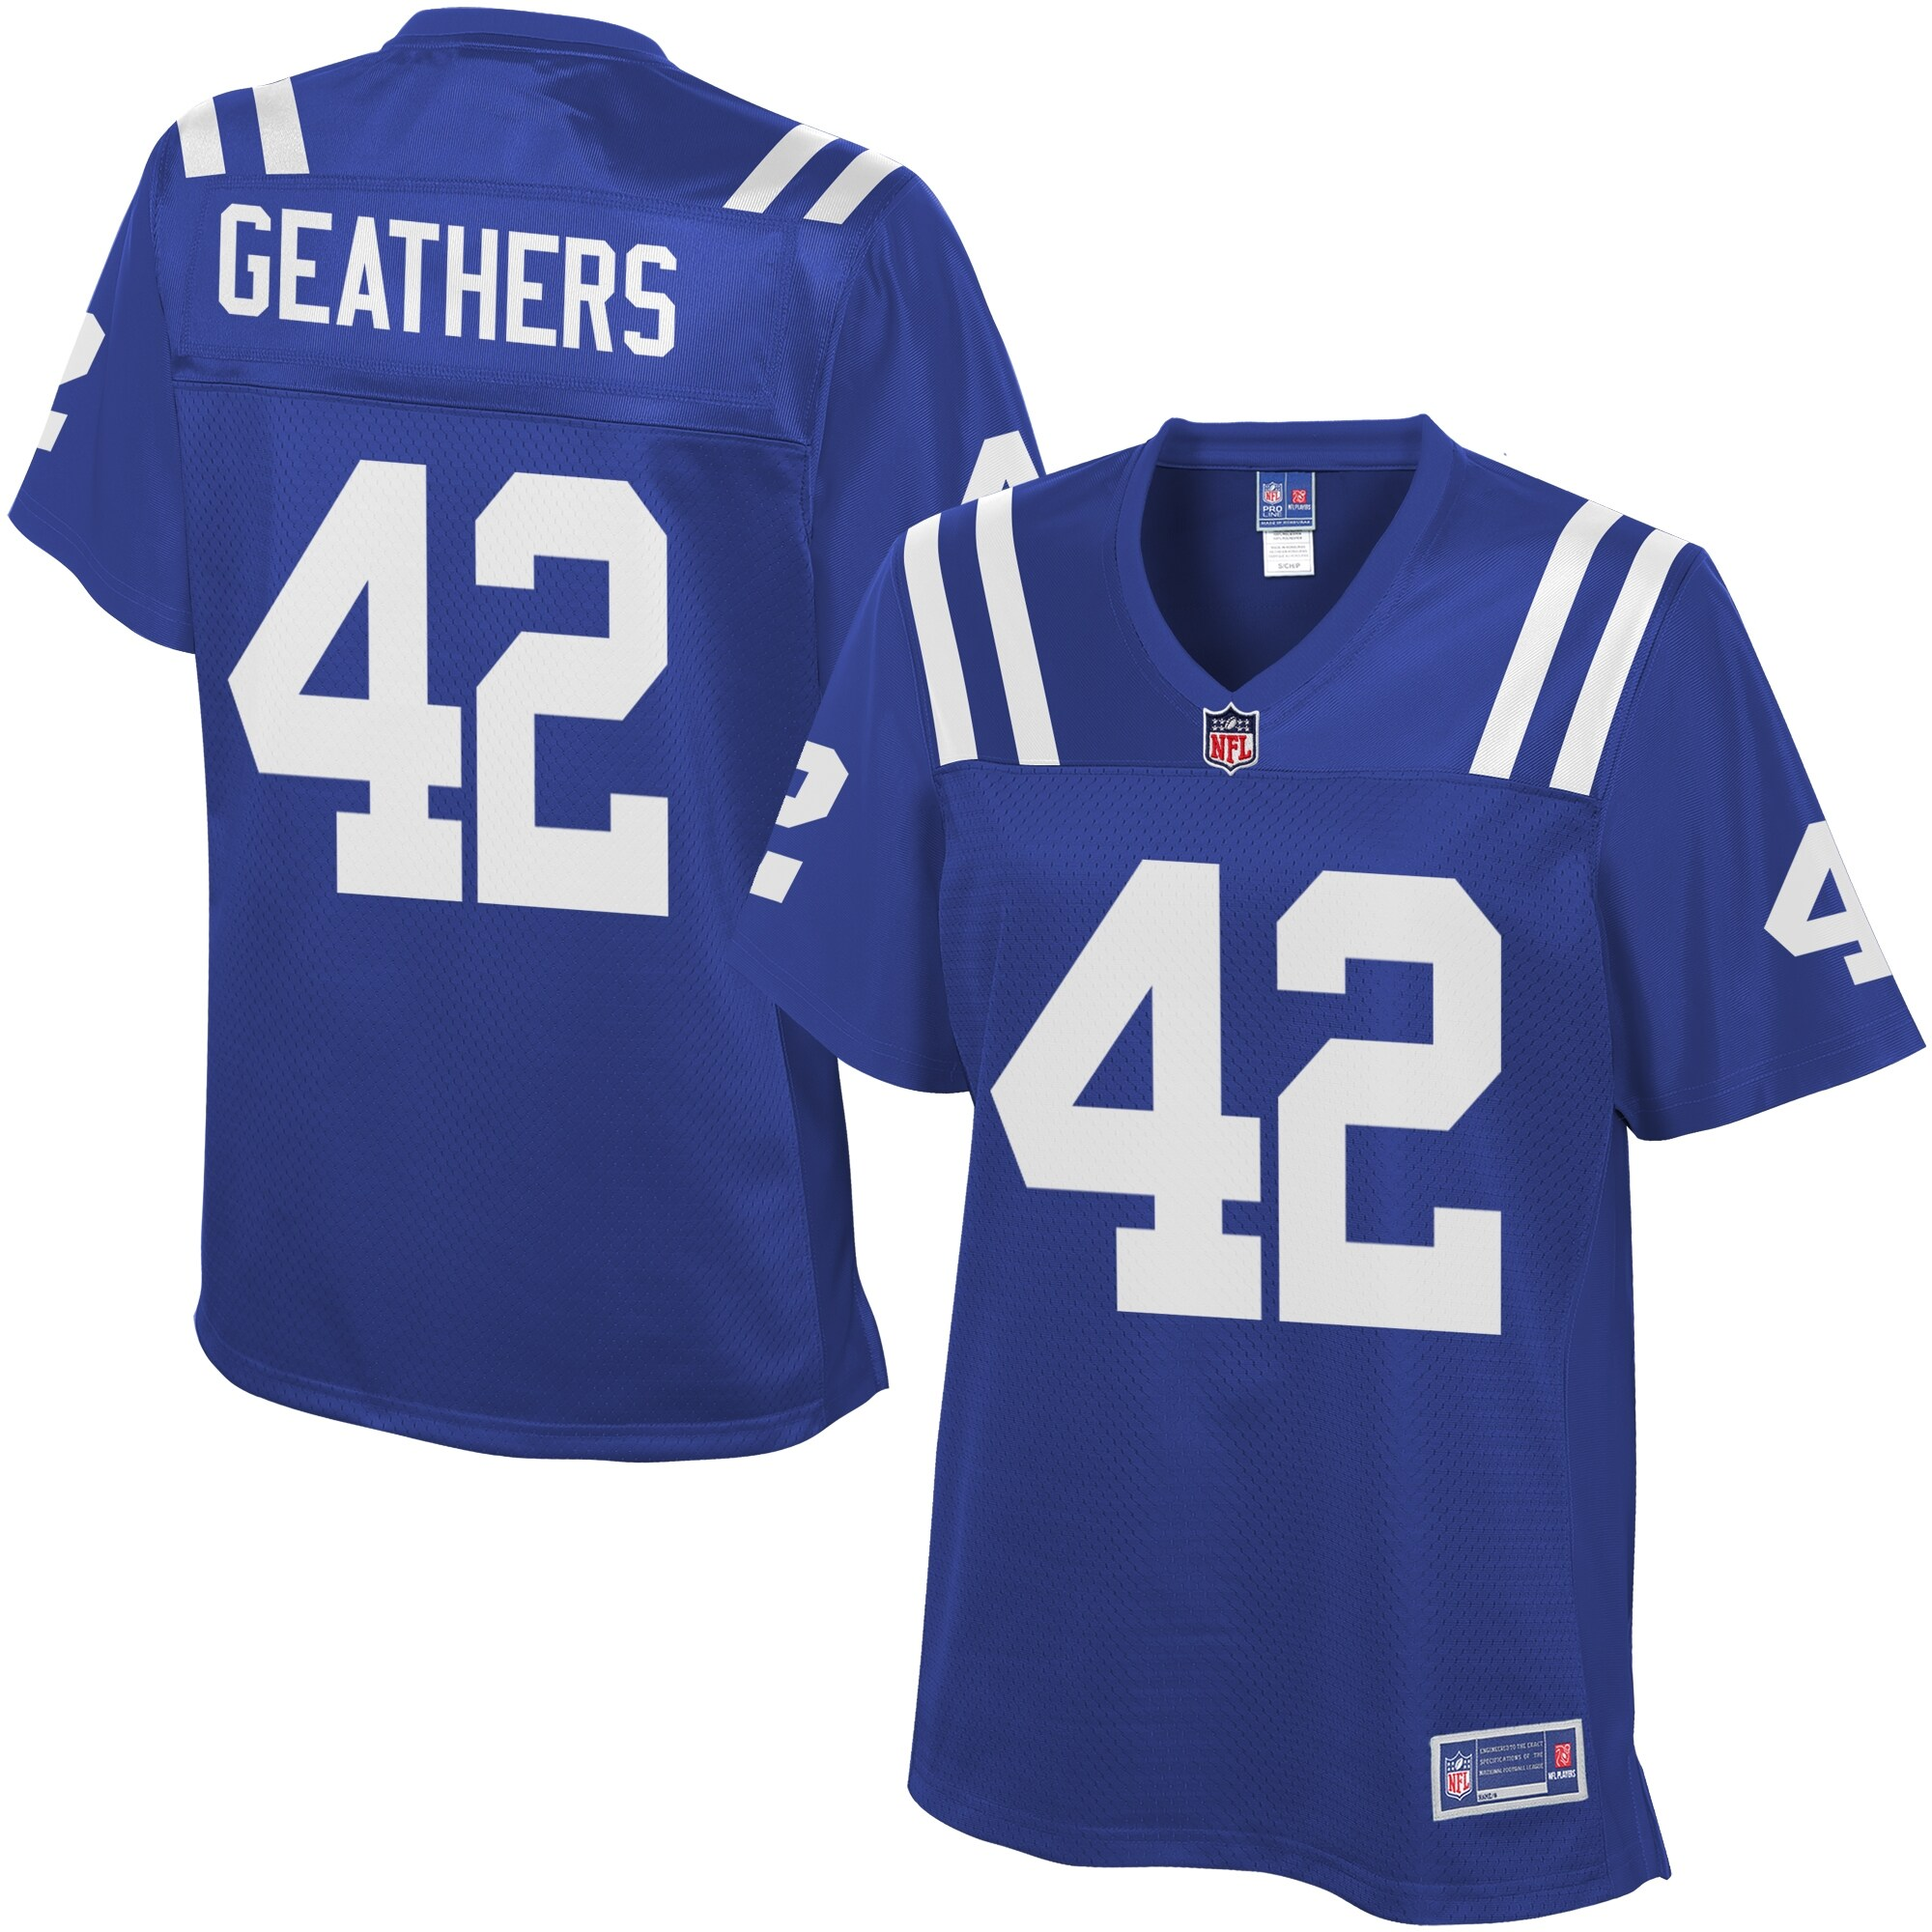 Clayton Geathers Indianapolis Colts NFL Pro Line Women's Team Color Jersey - Royal